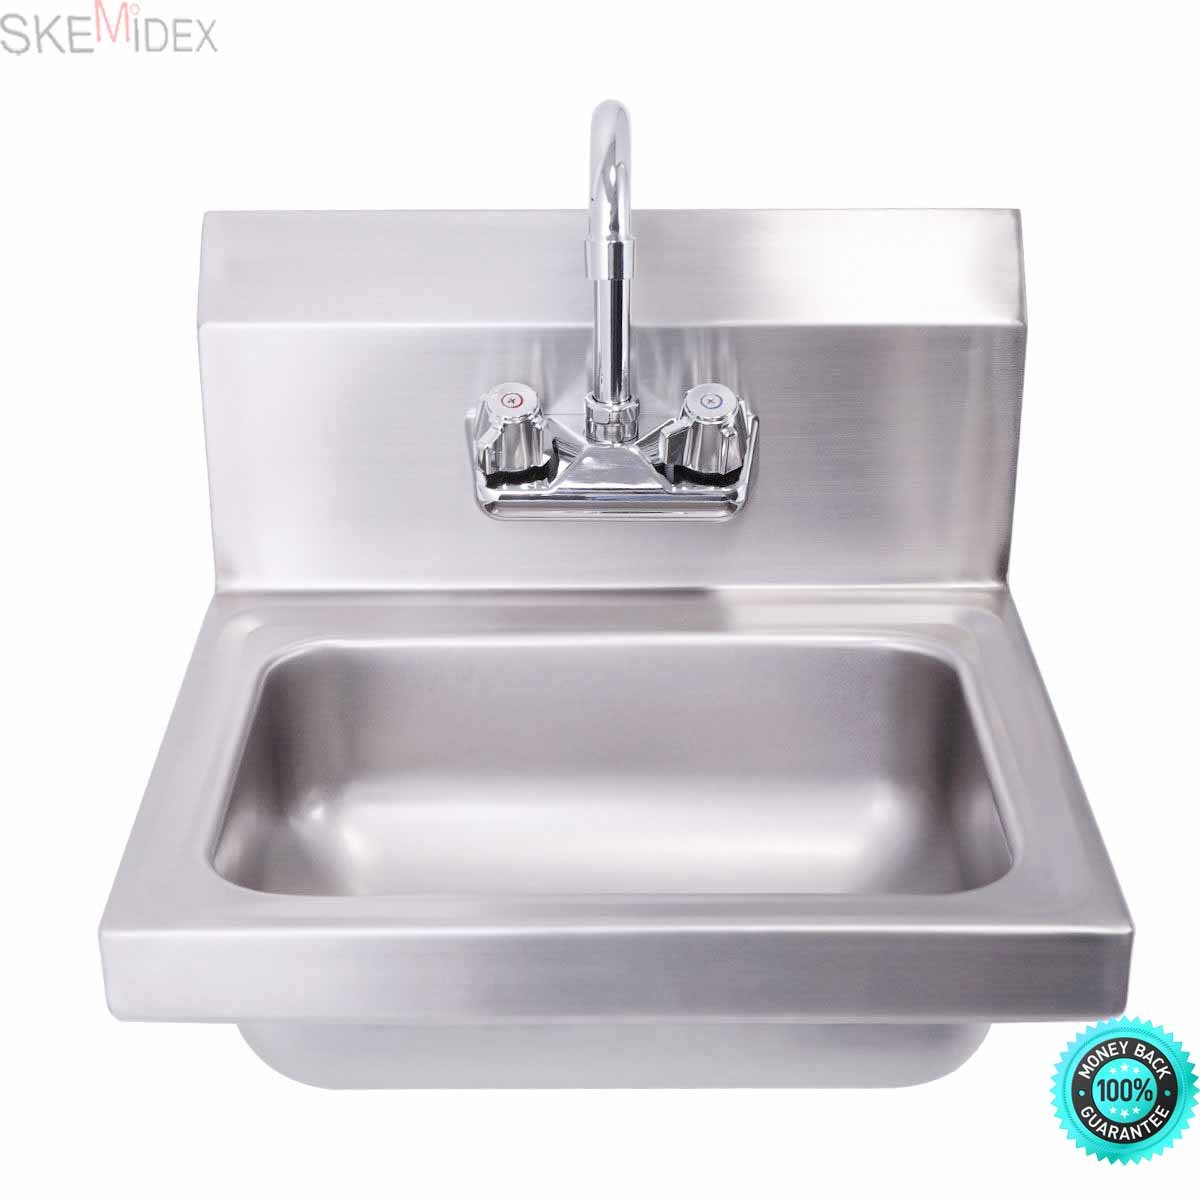 SKEMiDEX---Commercial Wall Mount Kitchen Hand Wash Sink NSF Stainless Steel with Faucet This is a hand sink with faucet, which is operated by double knee pedal.The hand sink is made of stainless